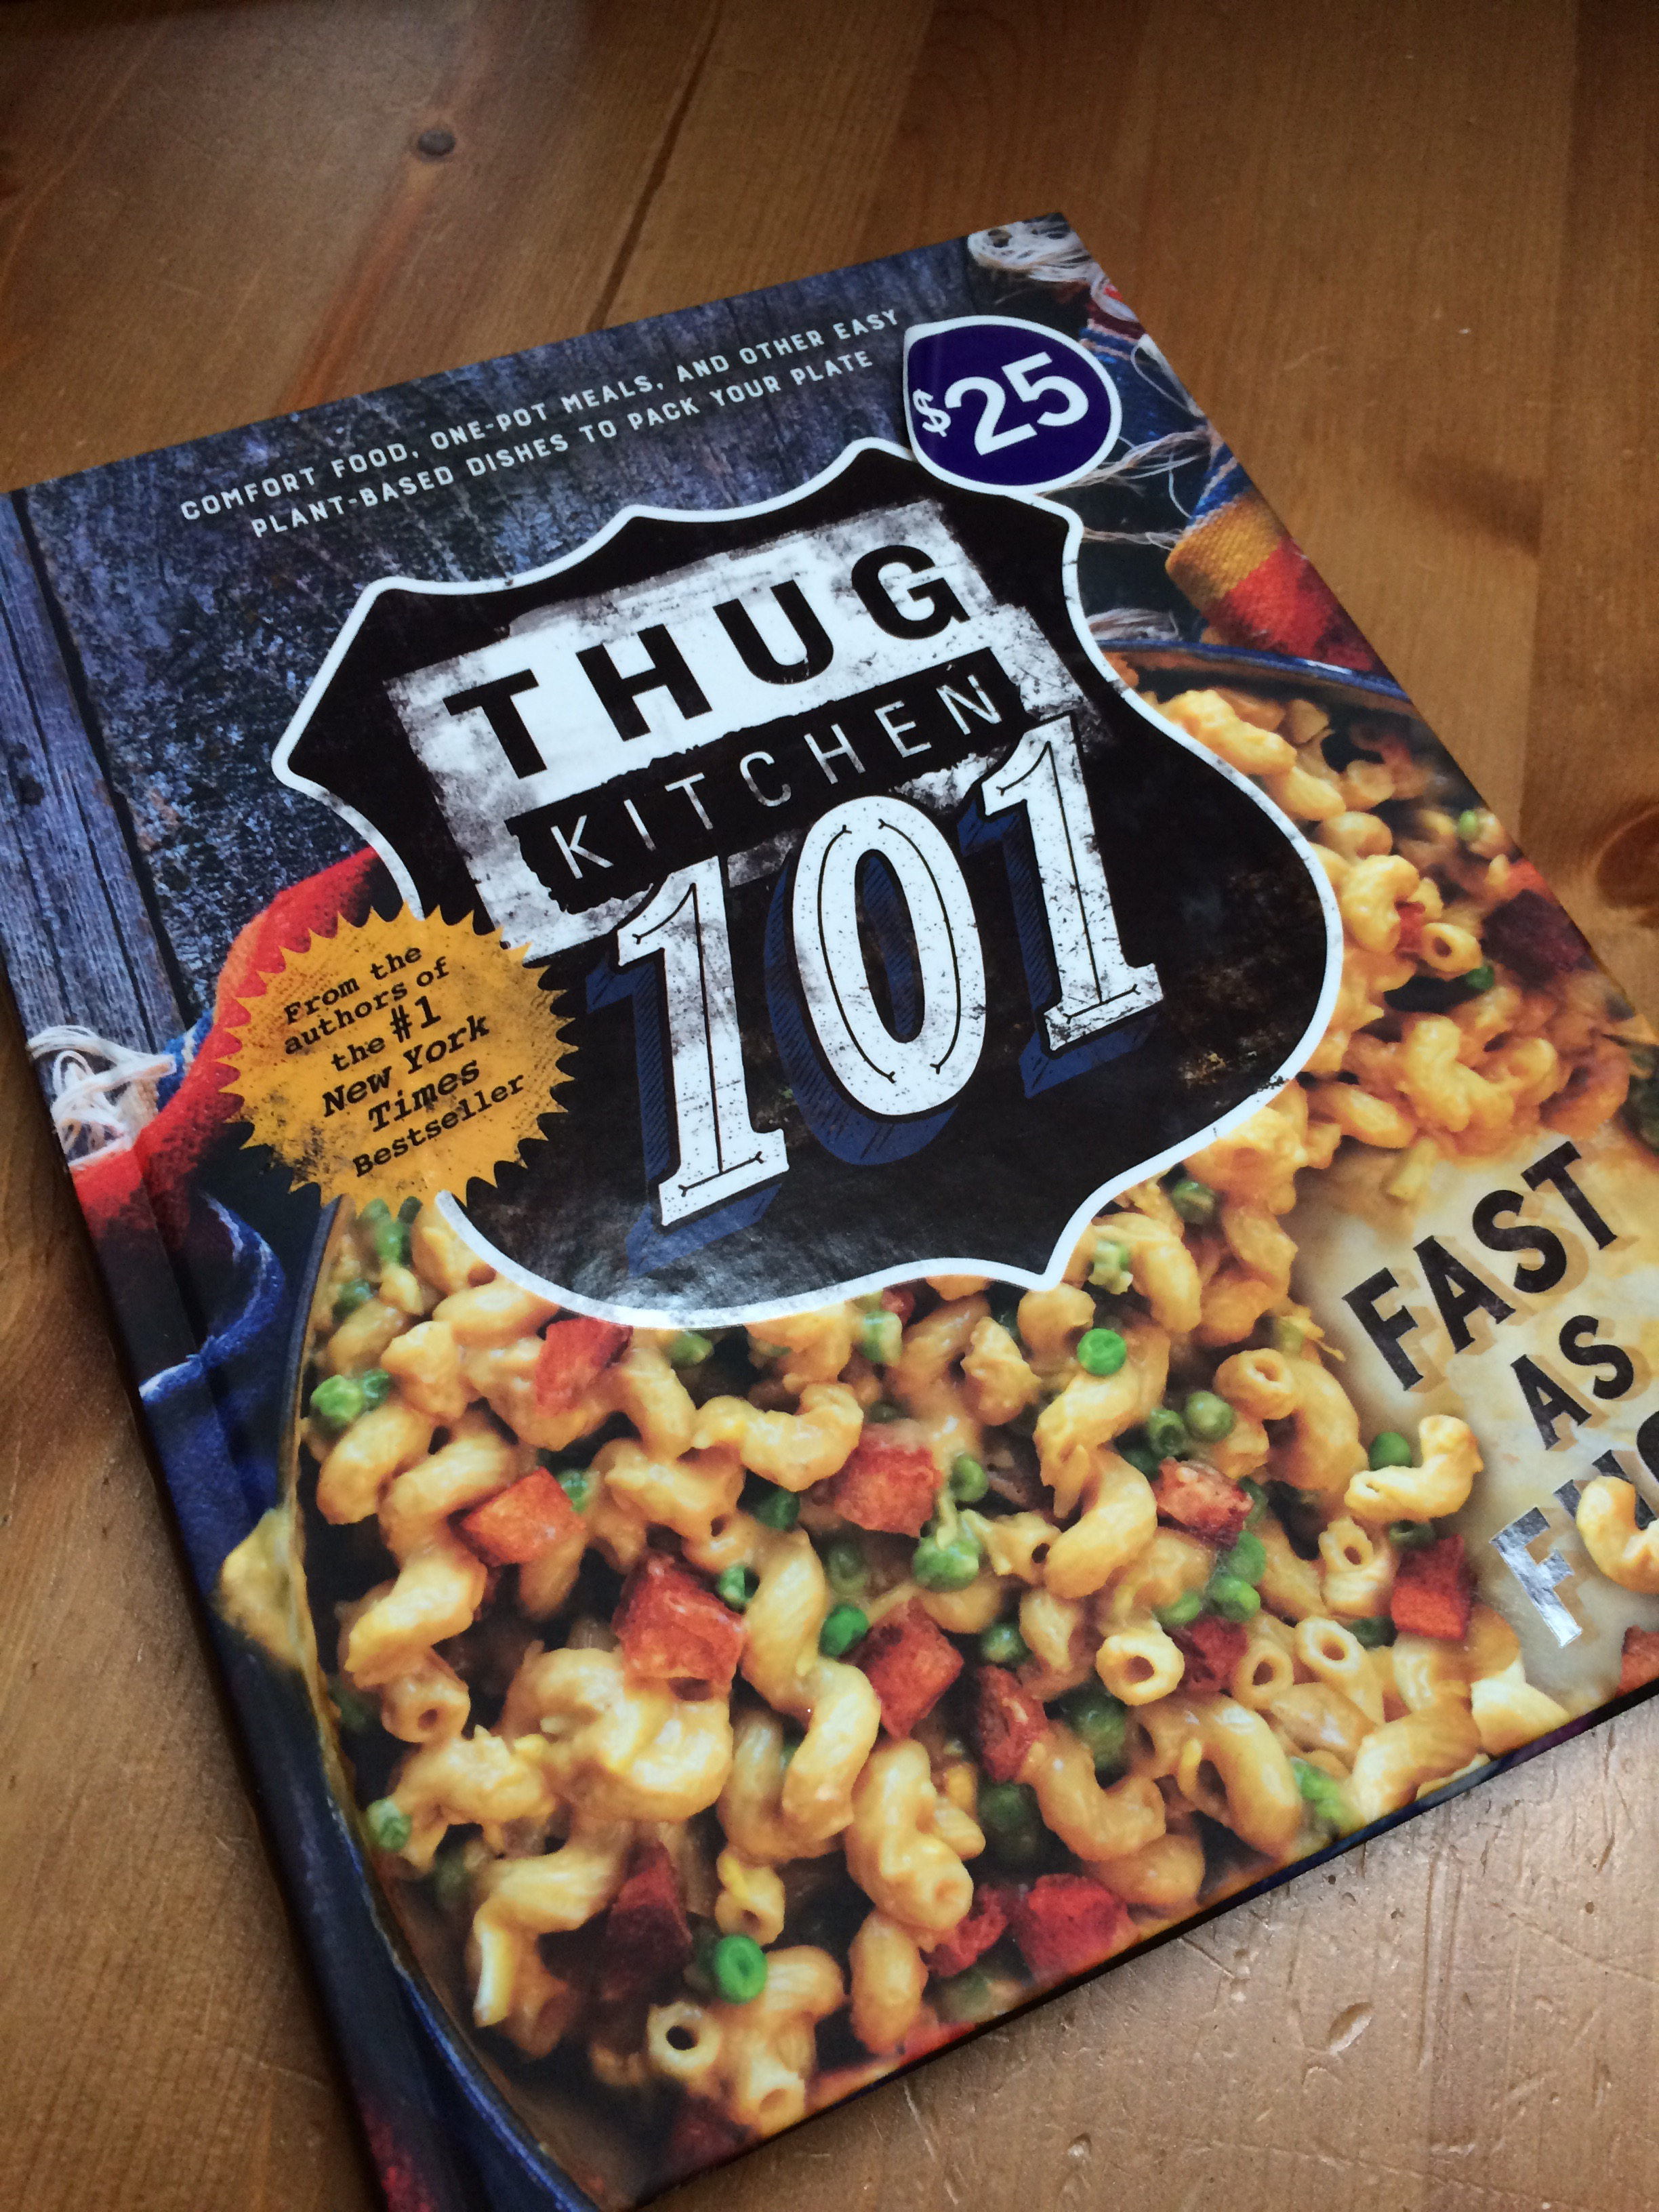 Thug Kitchen 101 Cookbook - A Dad In The BurbsA Dad In The Burbs